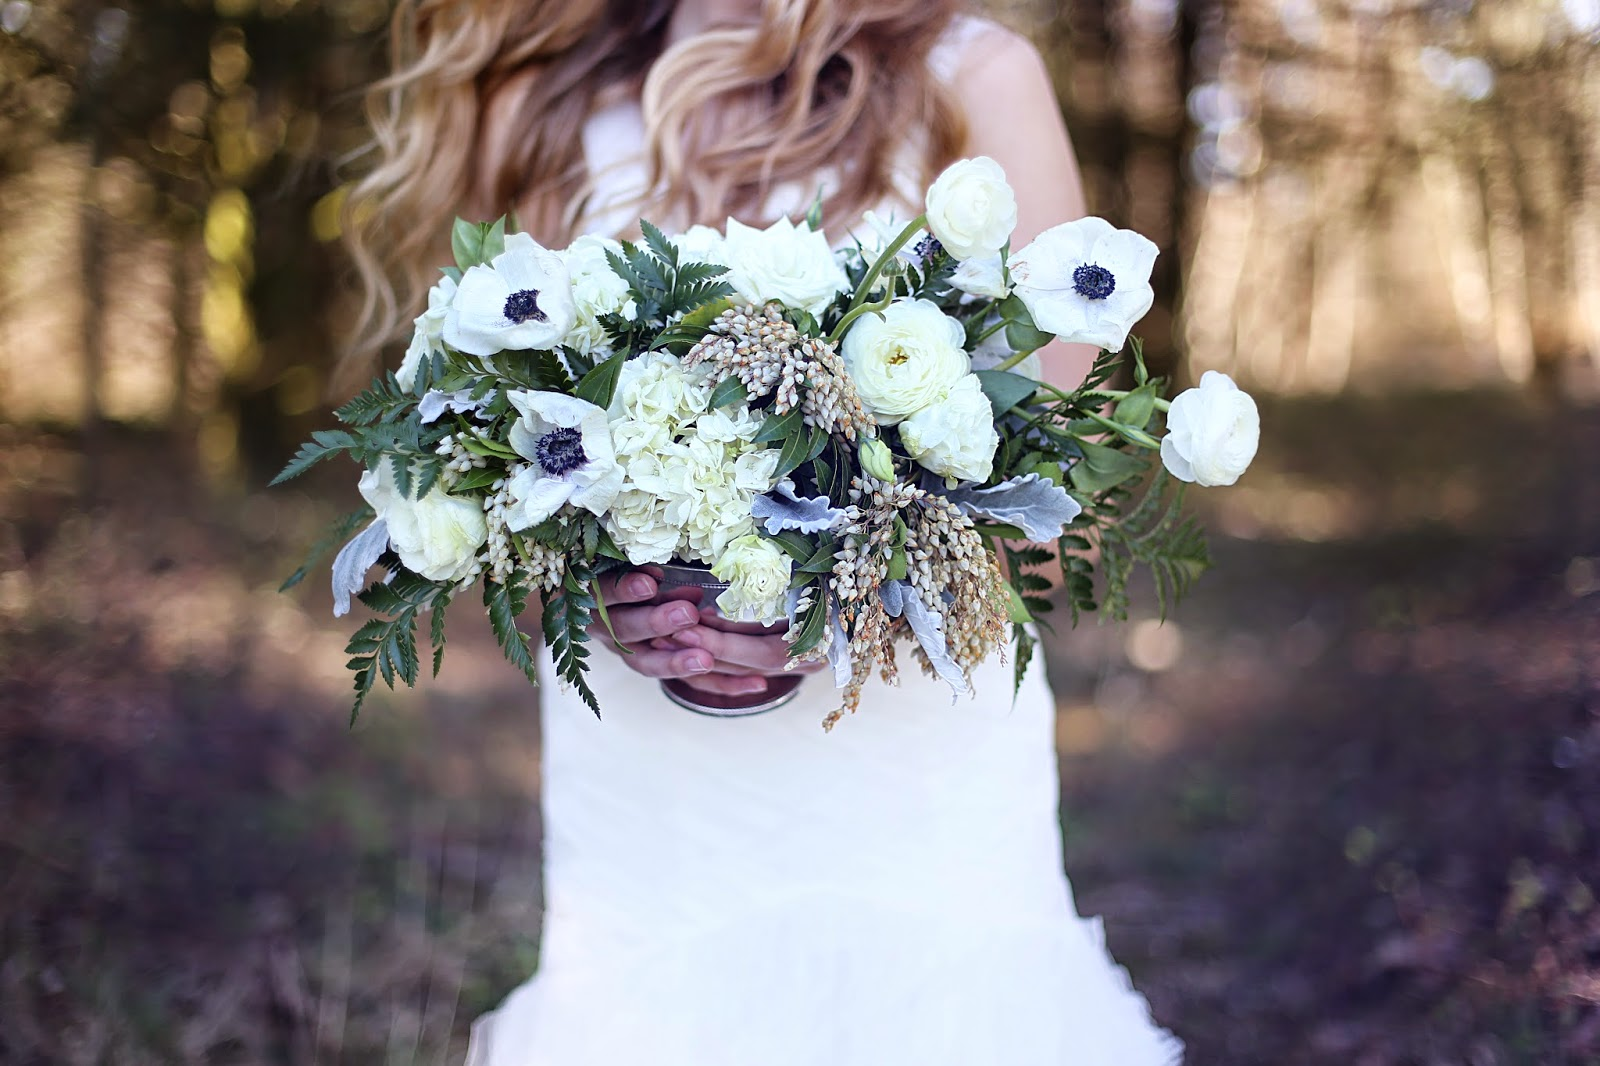 Spotted Stills, wedding, bridal, wedding bouquet, bridal bouquet, wedding dress, portland, portland oregon, petalos, floral, natural light, jenn pacurar, wedding photographer, portland wedding photographer, oregon wedding photographer